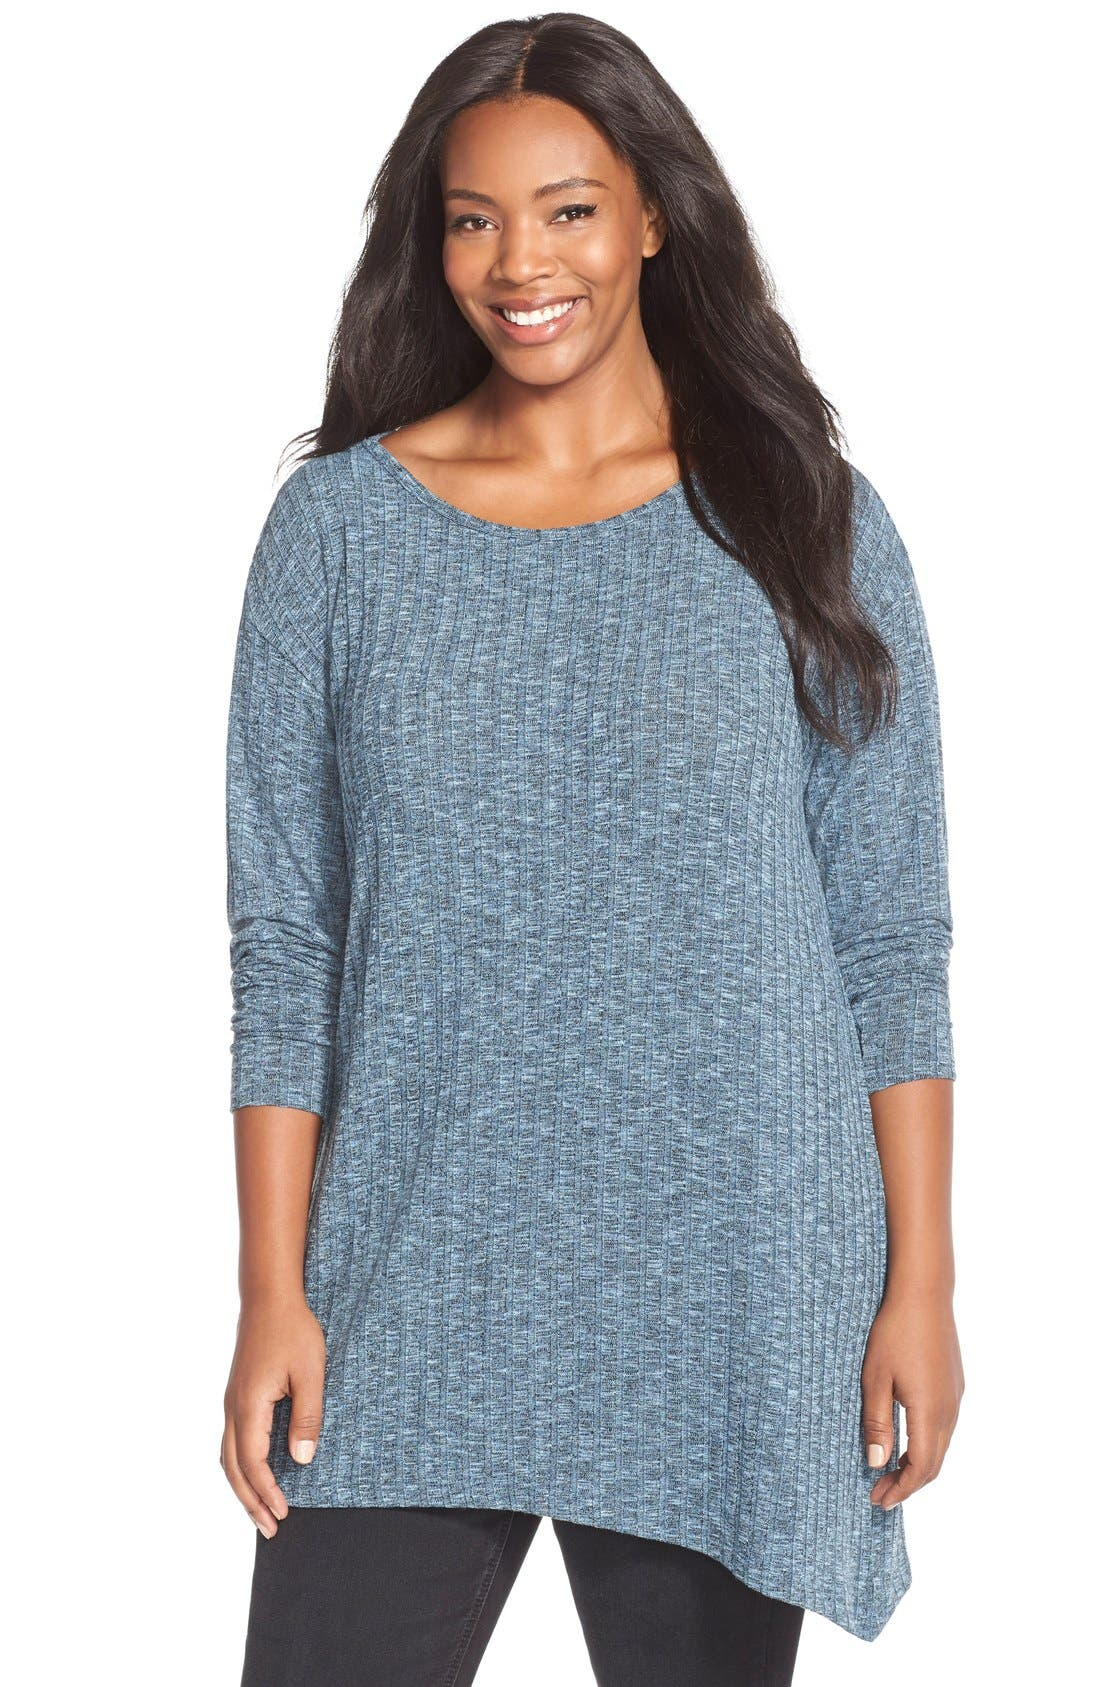 Asymmetrical Slub Knit Tunic,                         Main,                         color, Blue Black Slub Rib Pattern